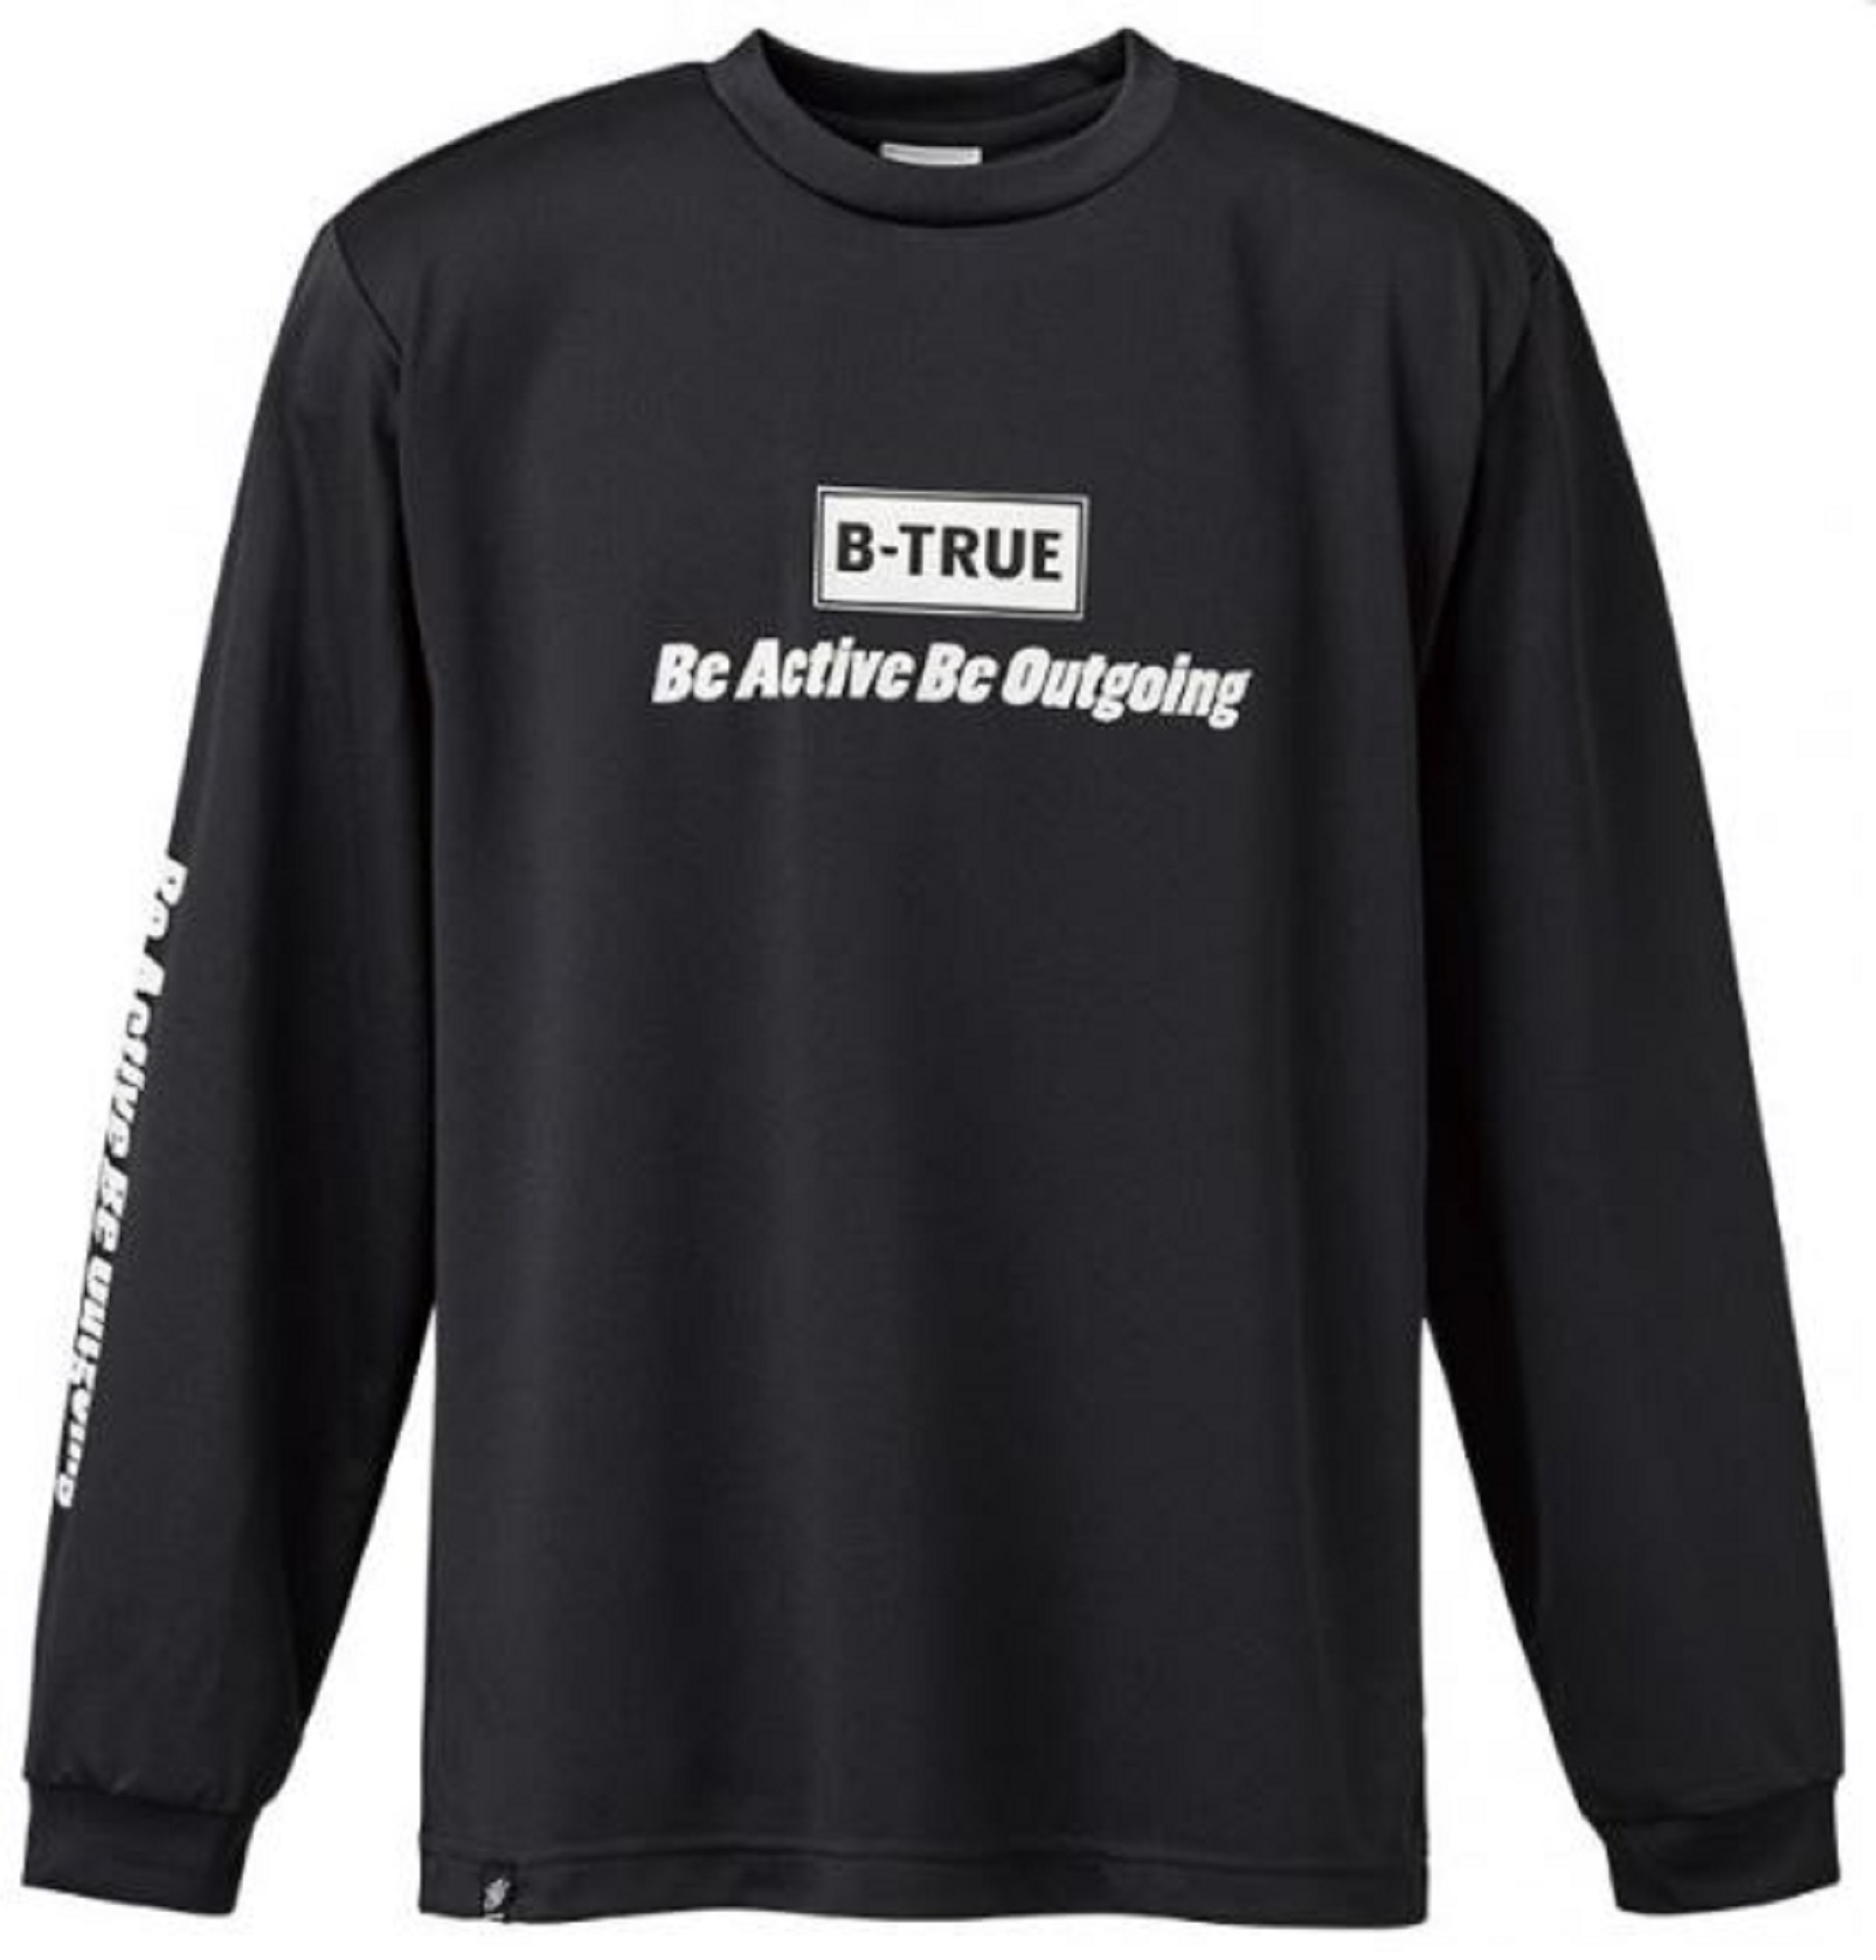 Evergreen T-Shirt Dry Fit Long Sleeve B-True B Type Size S Black (0136)